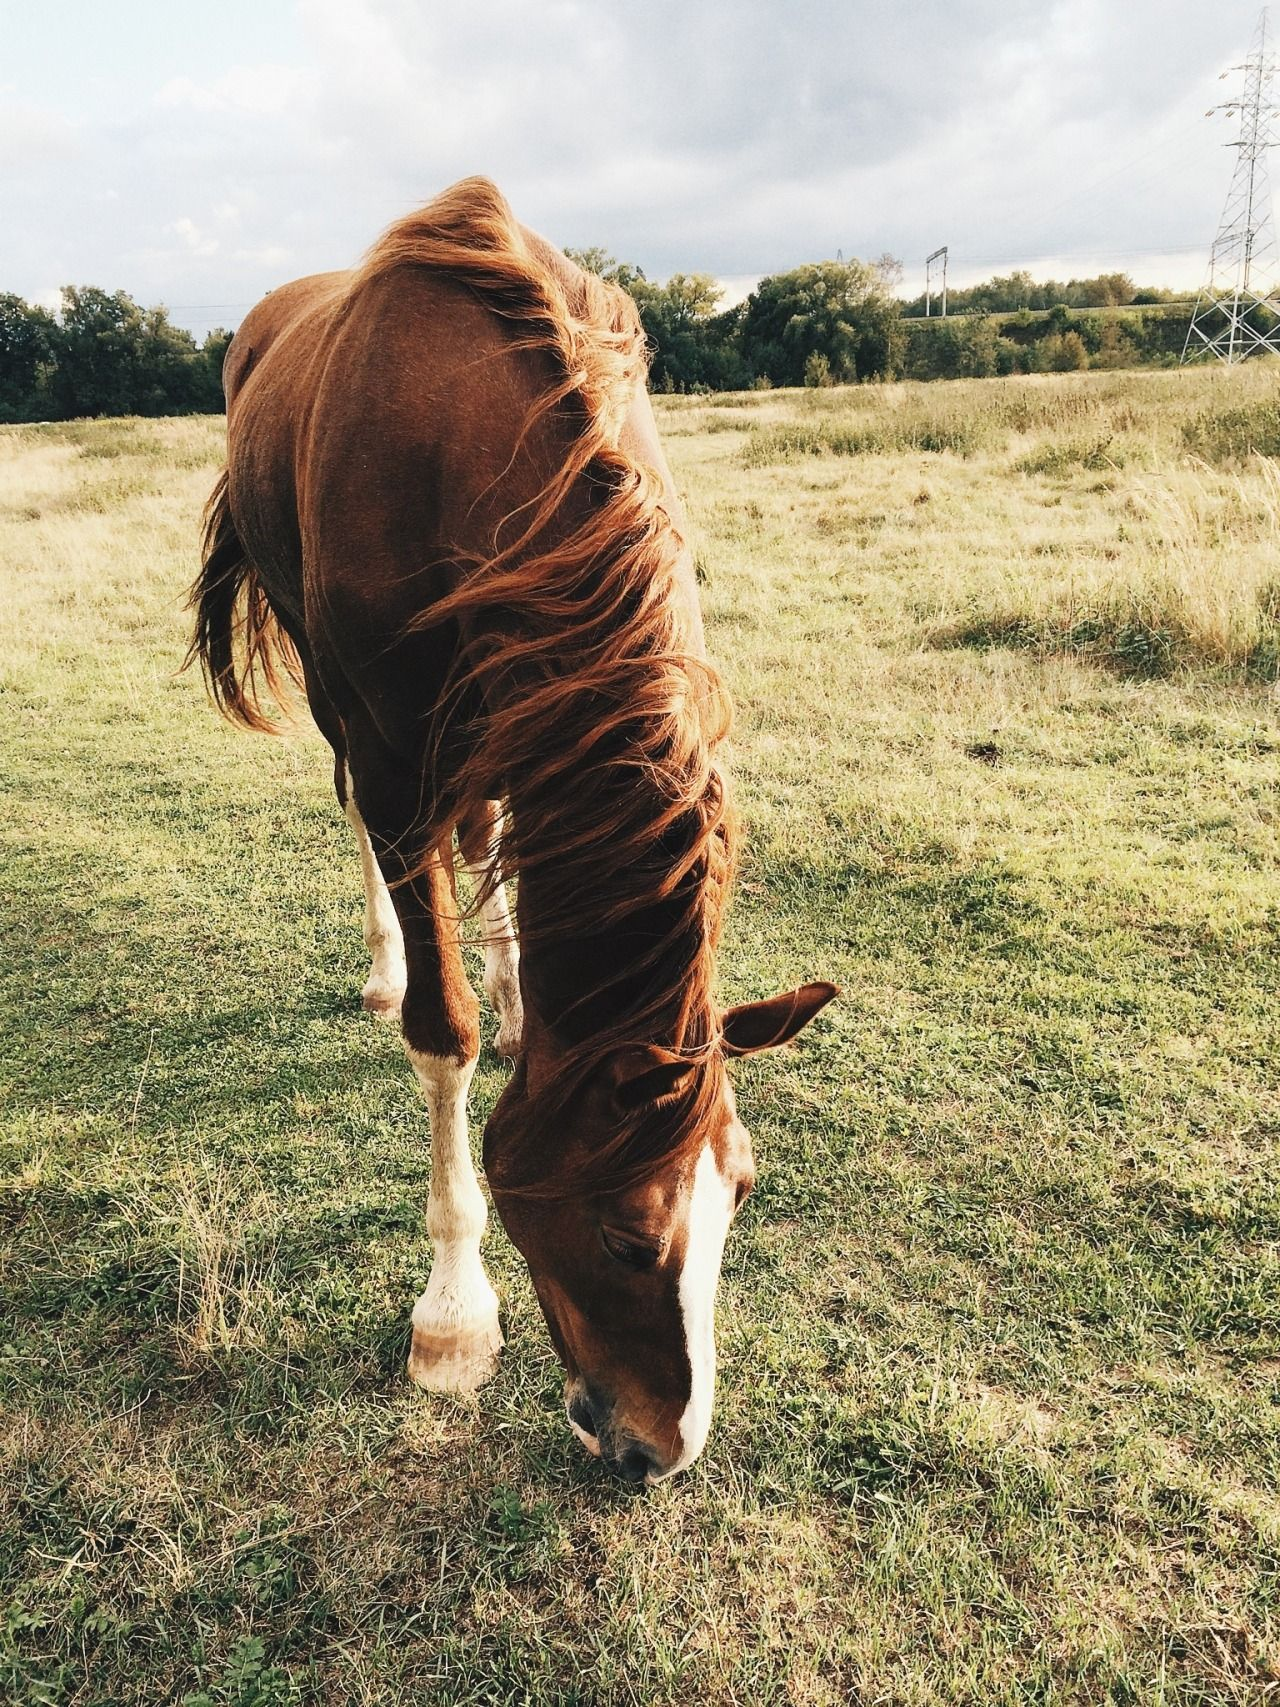 Pin by Alana Ross on PONIES Horses, Animals beautiful